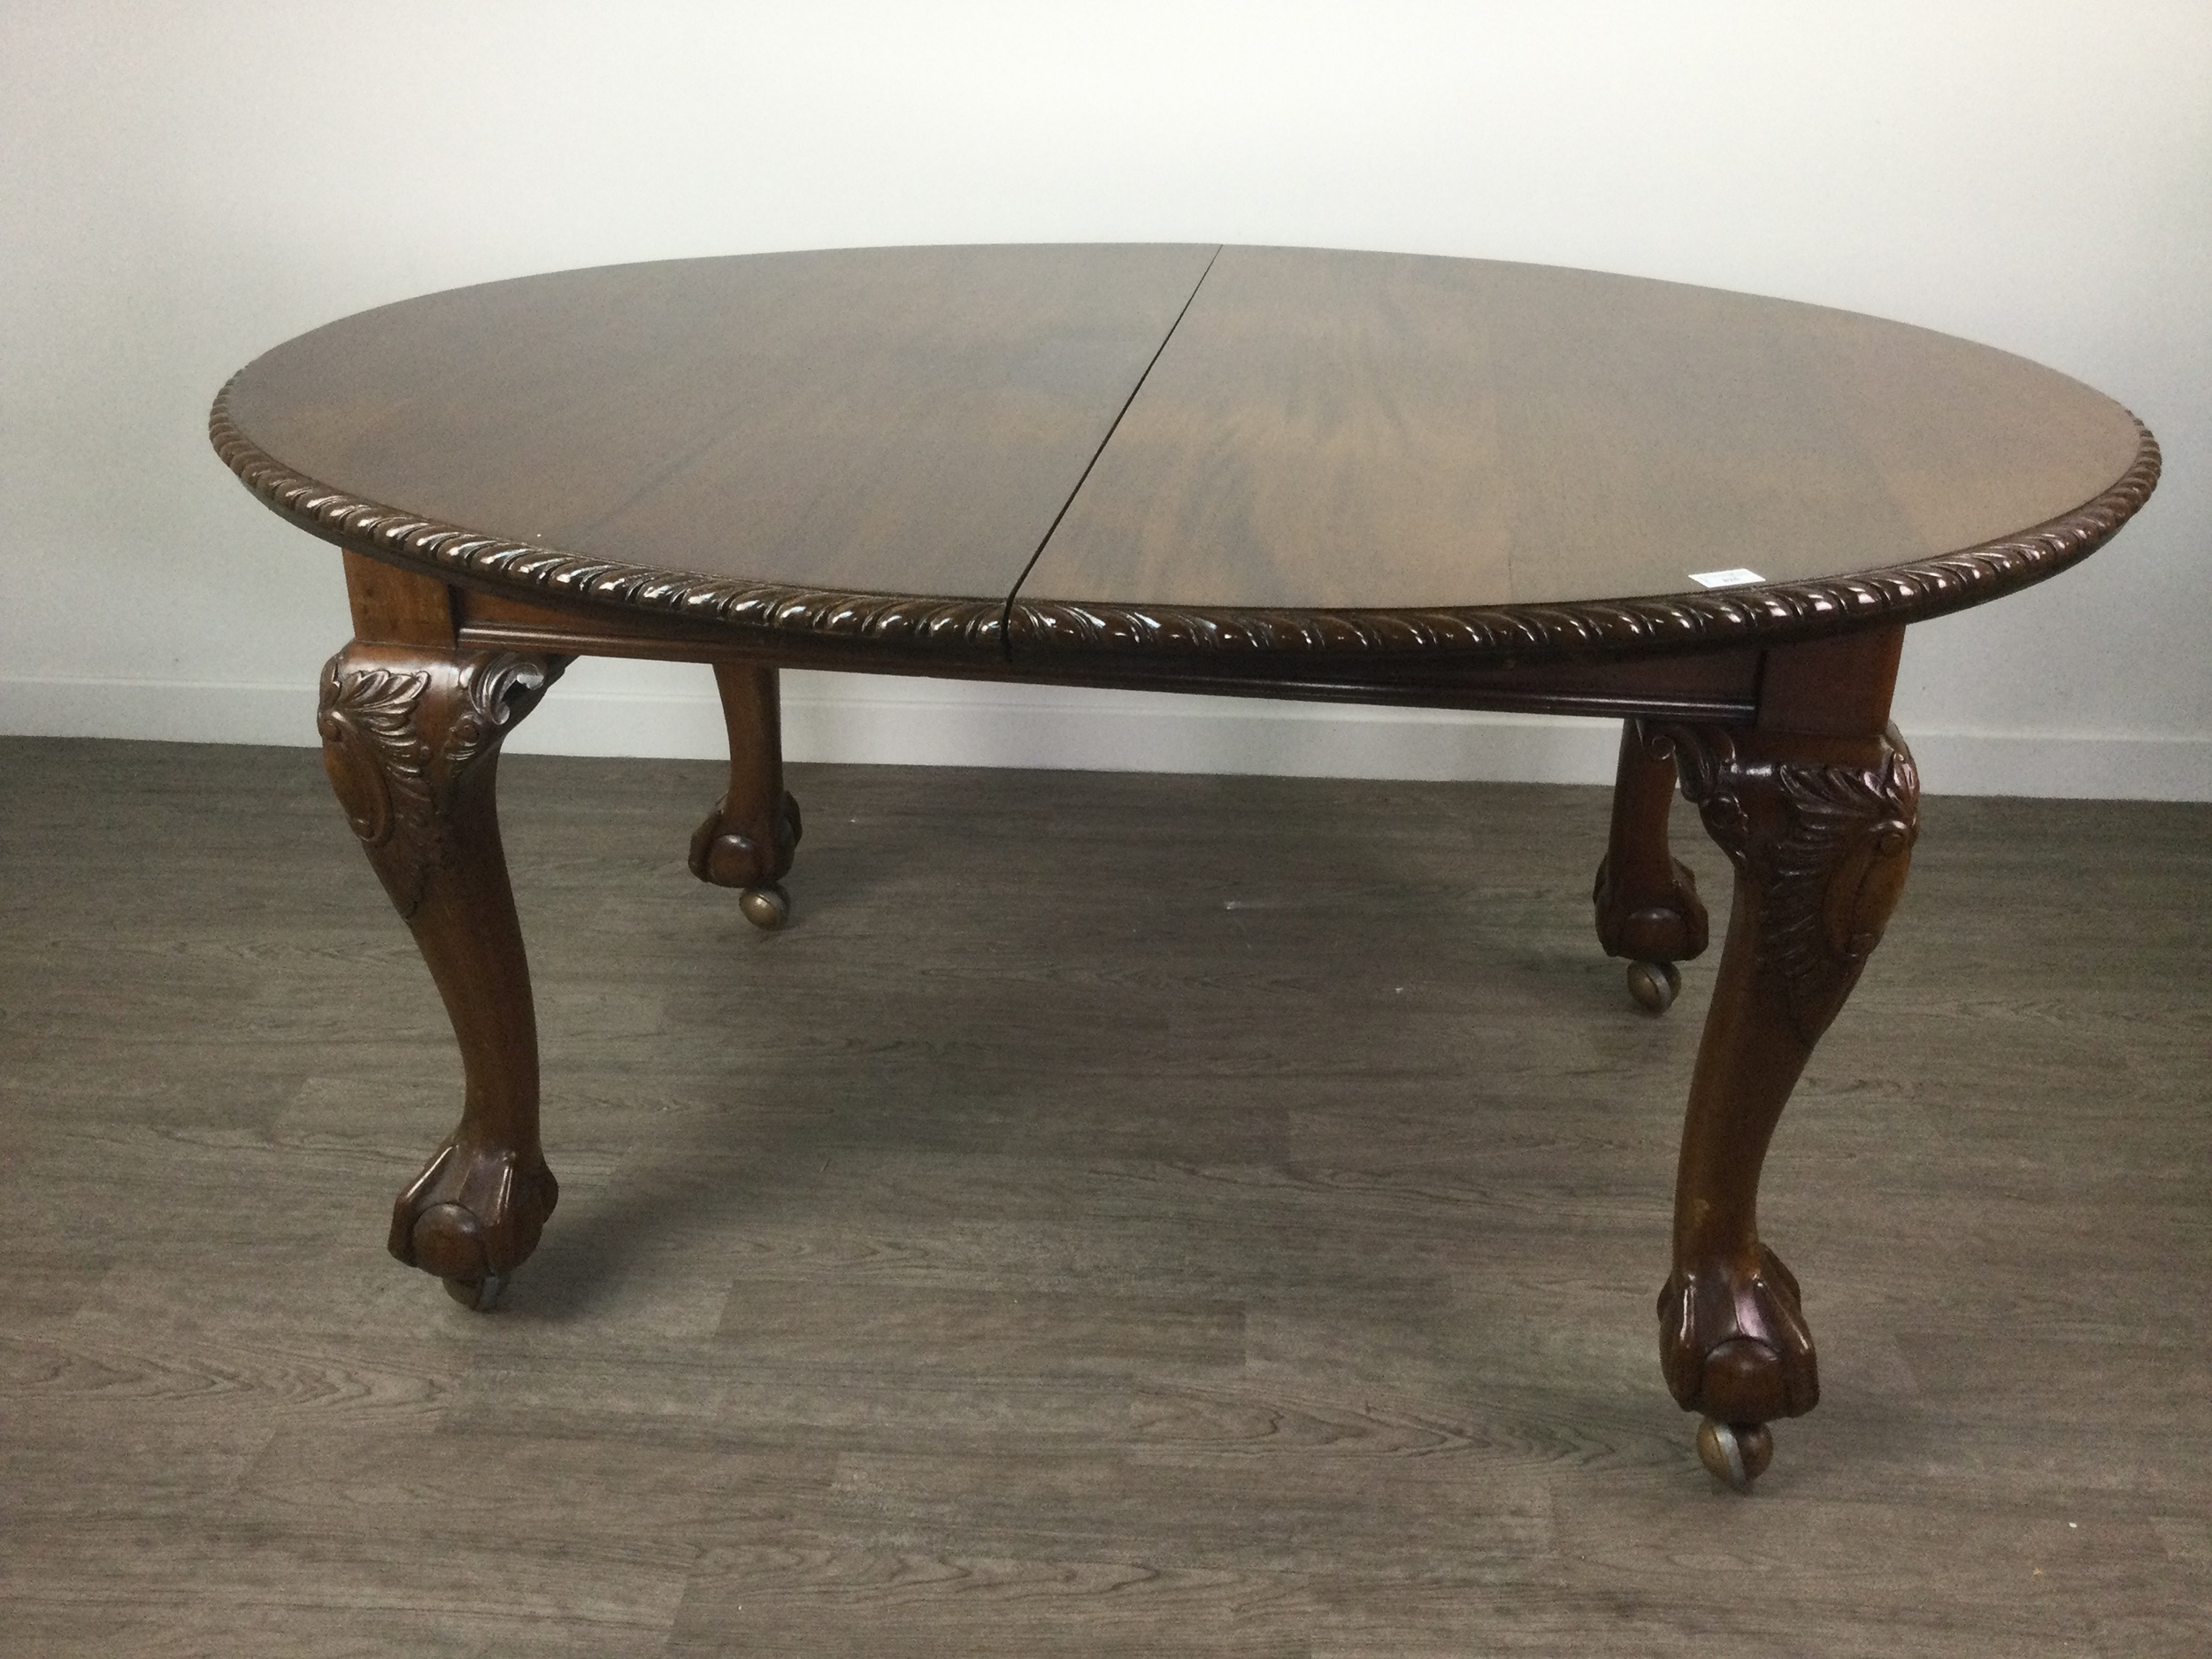 A MAHOGANY DINING TABLE OF CHIPPENDALE DESIGN - Image 2 of 2